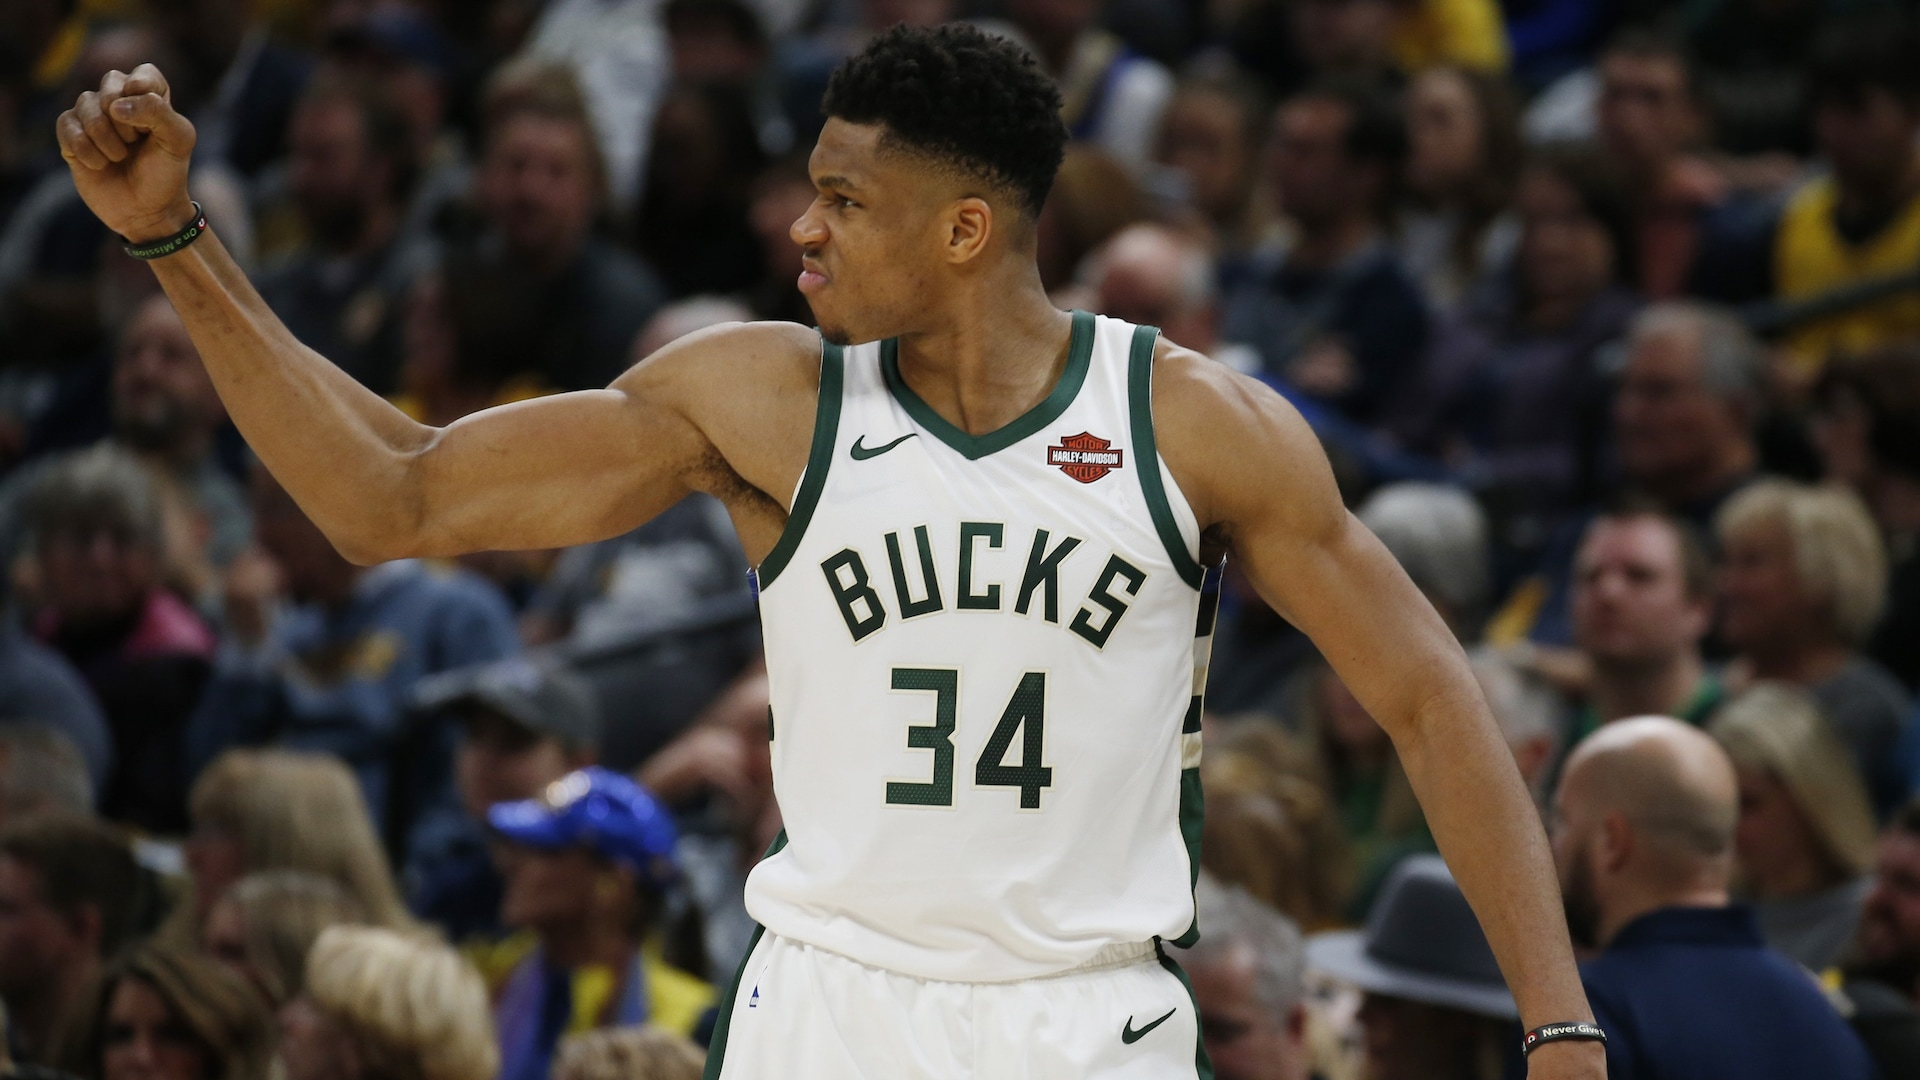 Giannis Antetokounmpo becomes 12th player to win consecutive MVP awards